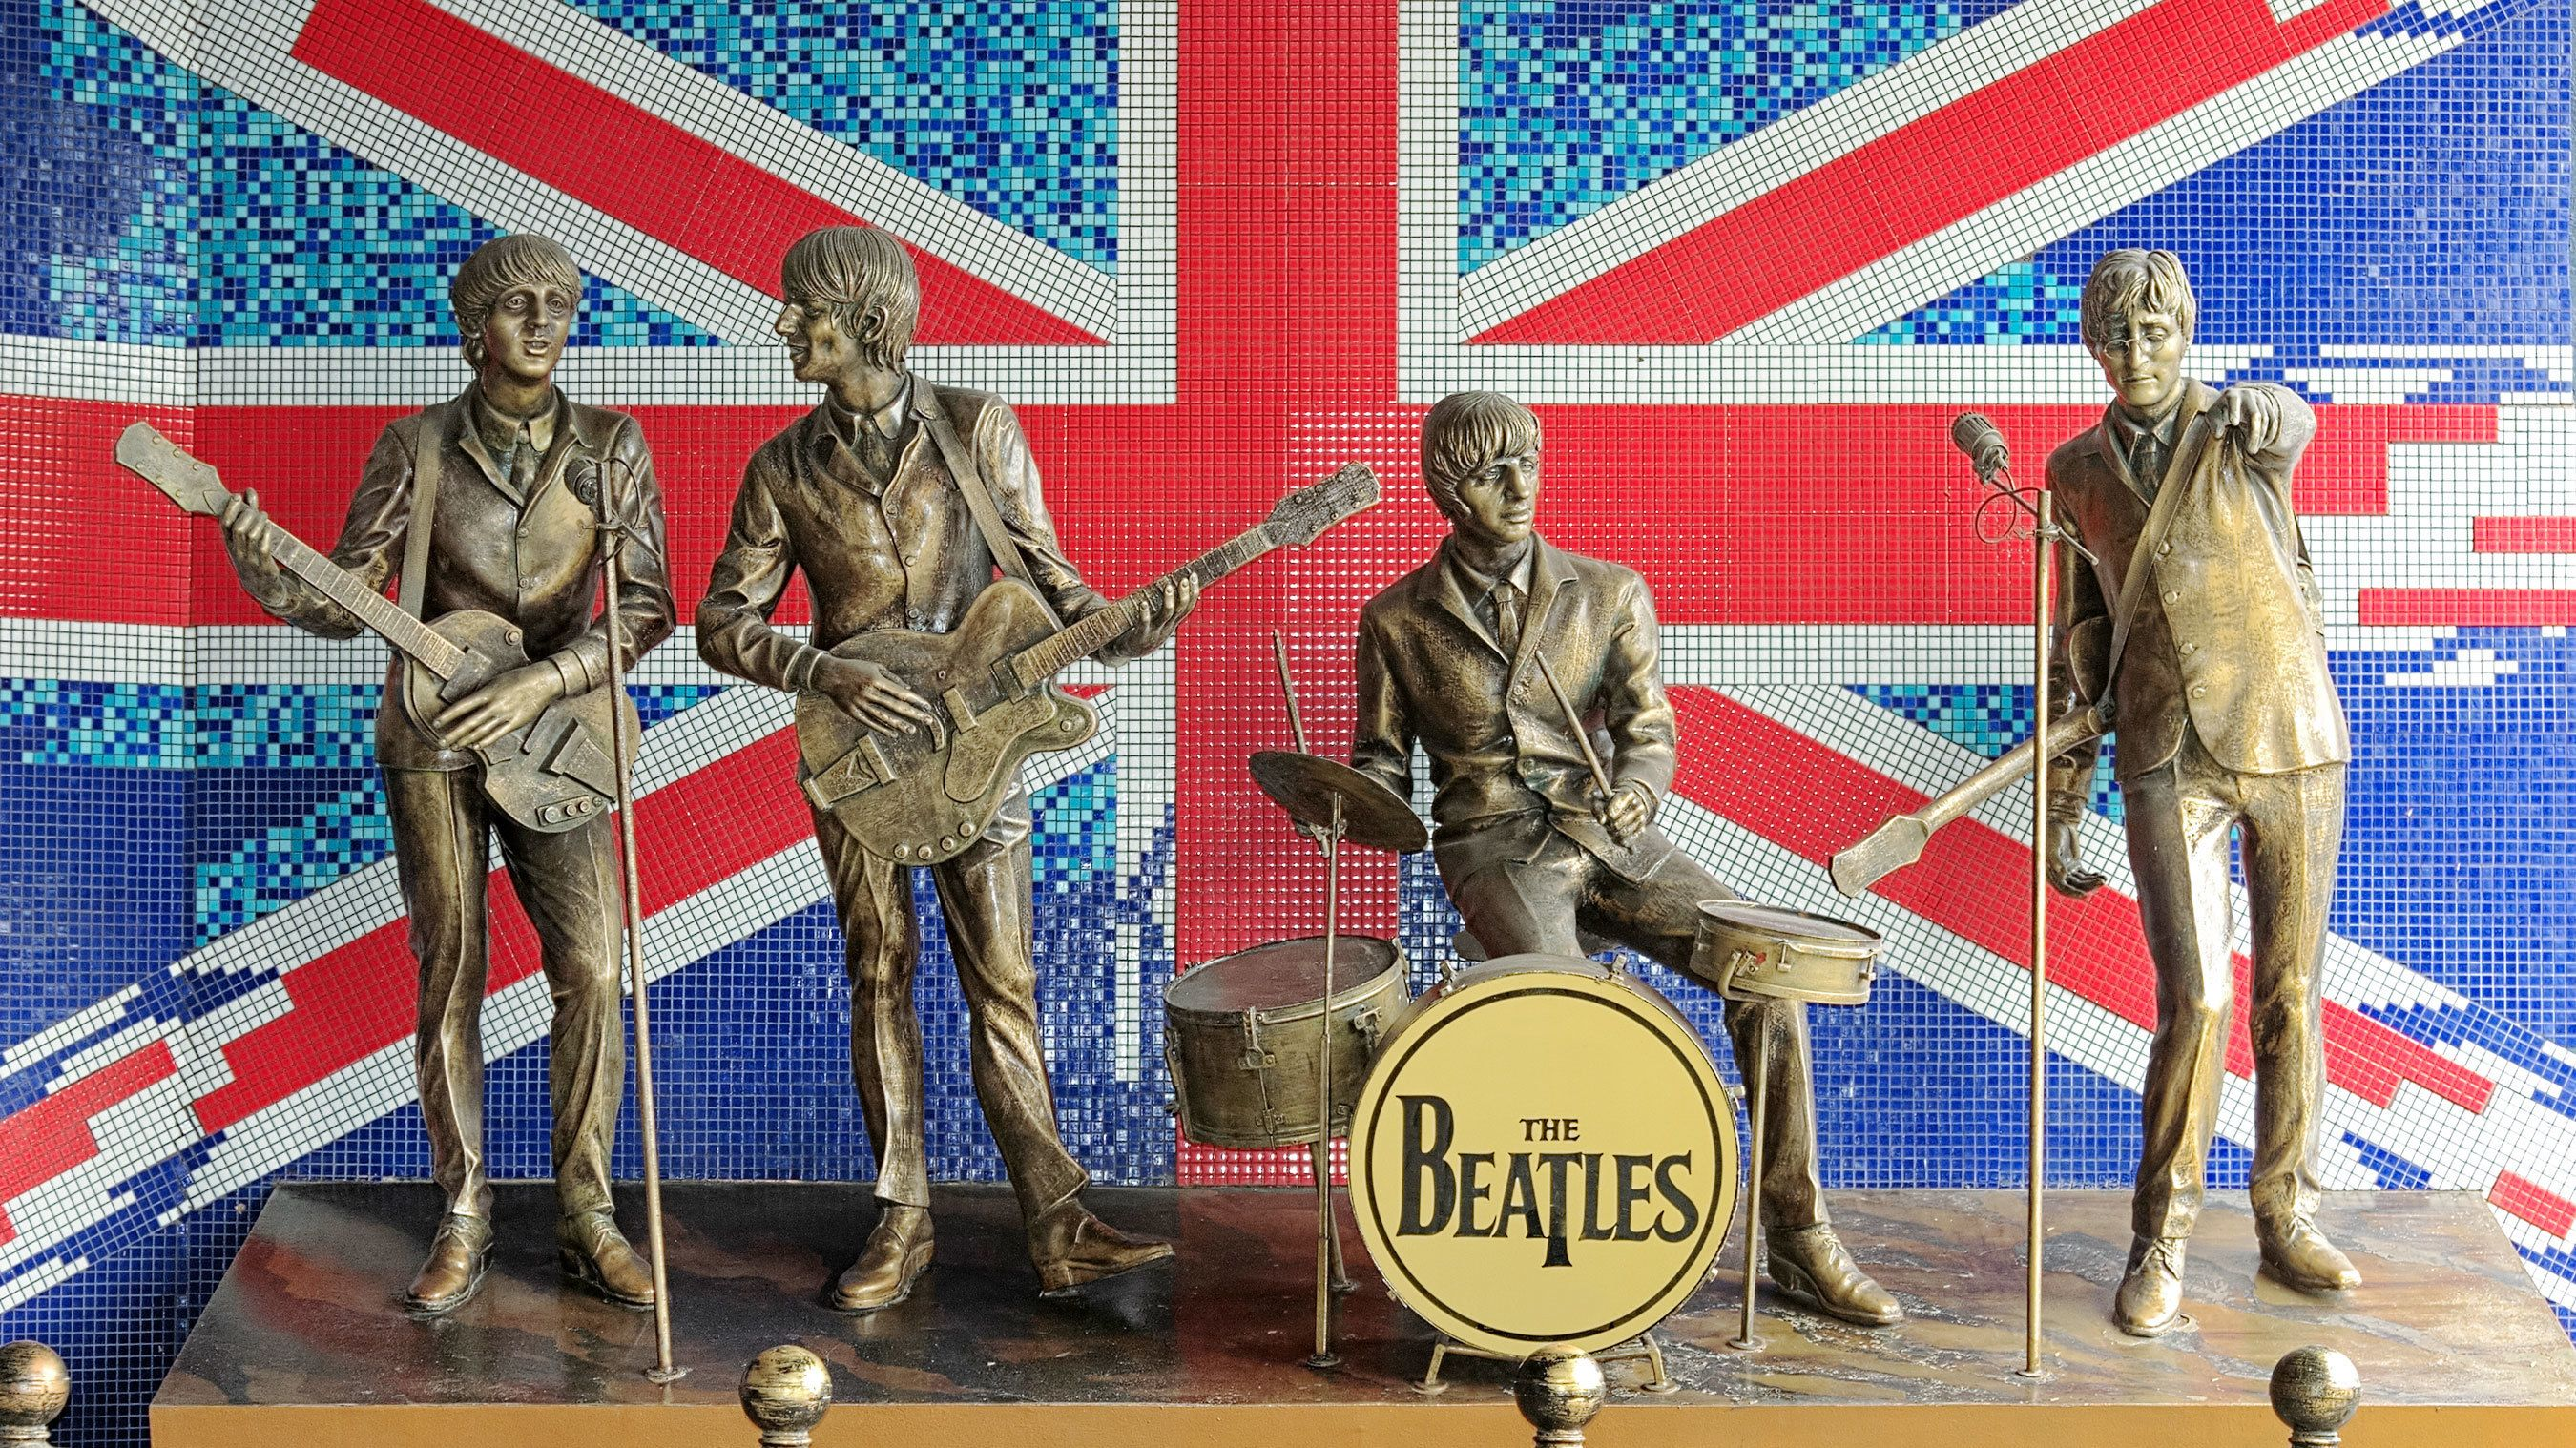 Liverpool & The Beatles Day Trip by Train